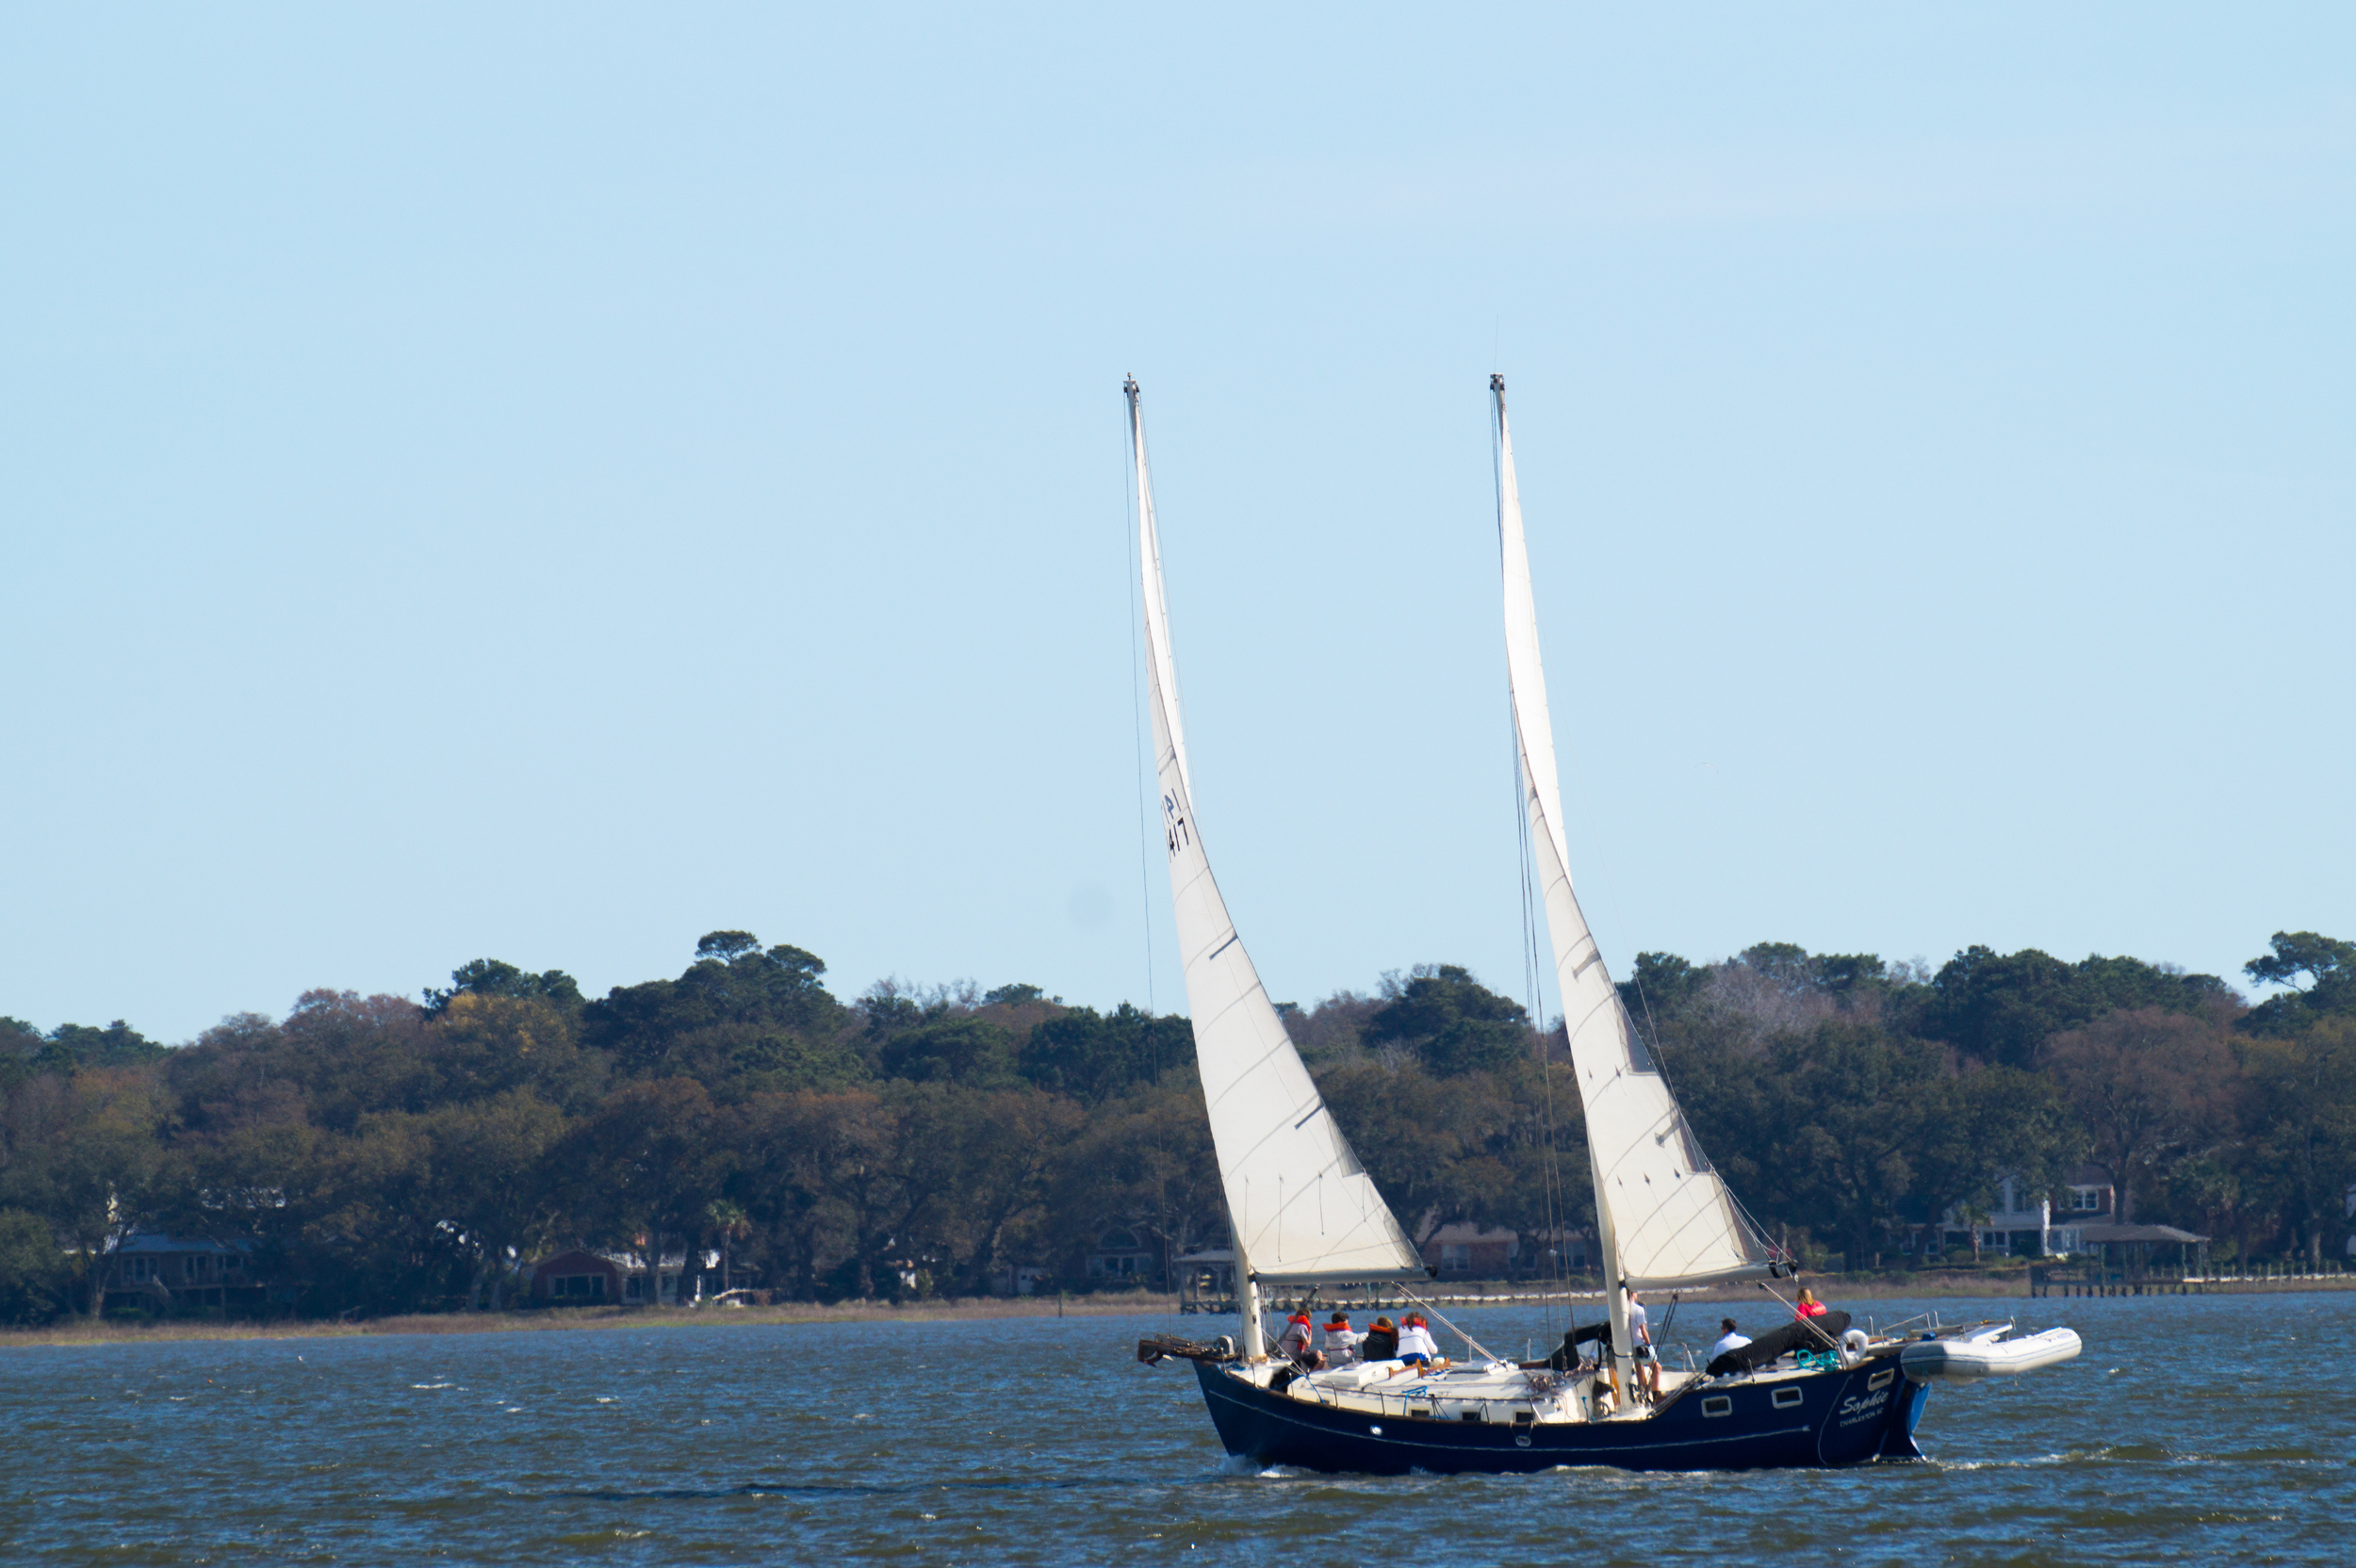 A sailboat in Charleston's Bay during a bright and sunny day.